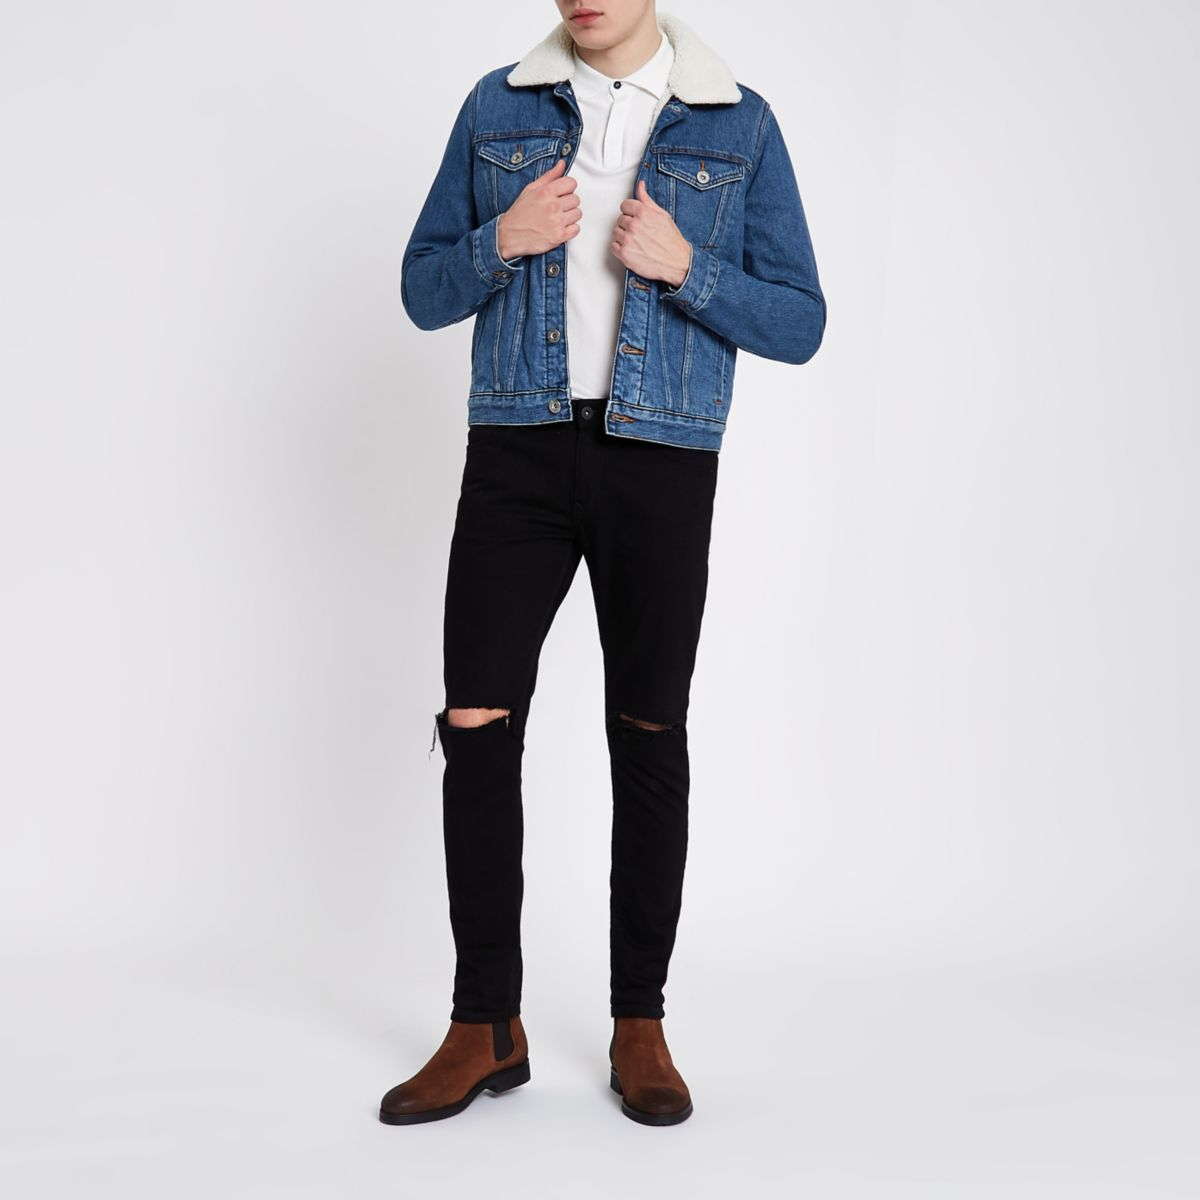 Blue fleece lined denim jacket